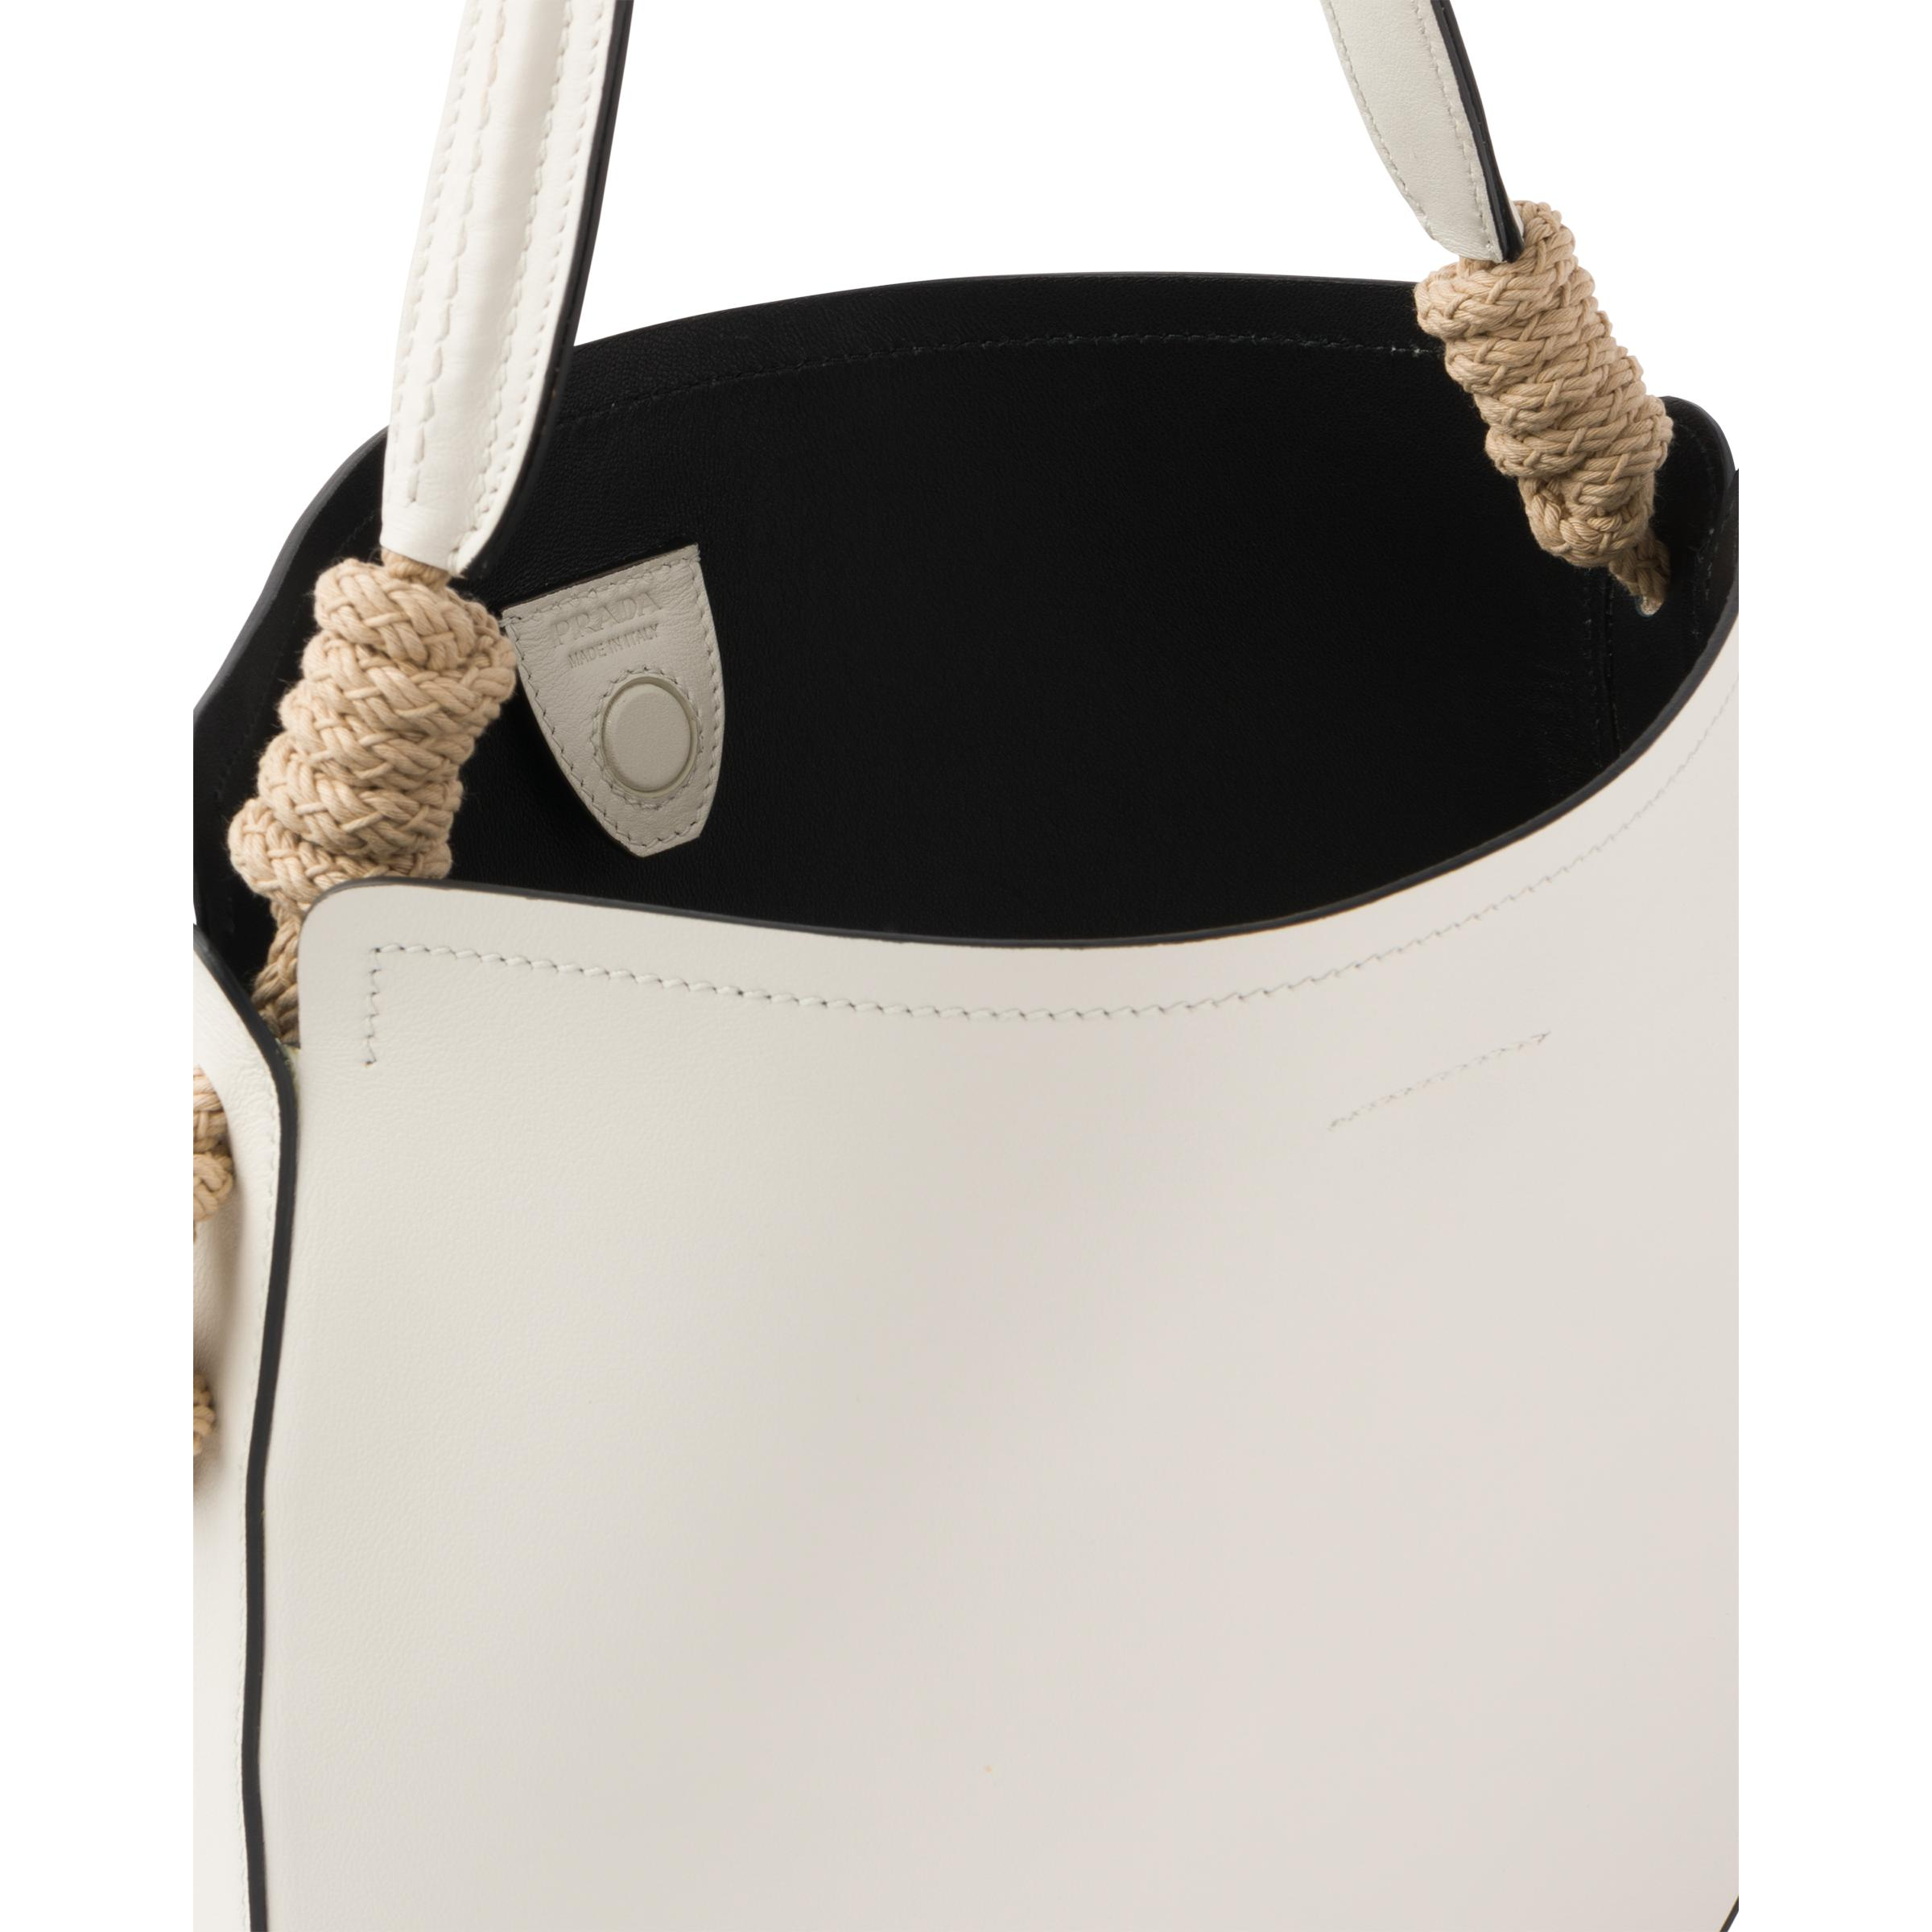 Leather Bag With Cord Details Women White/black 4